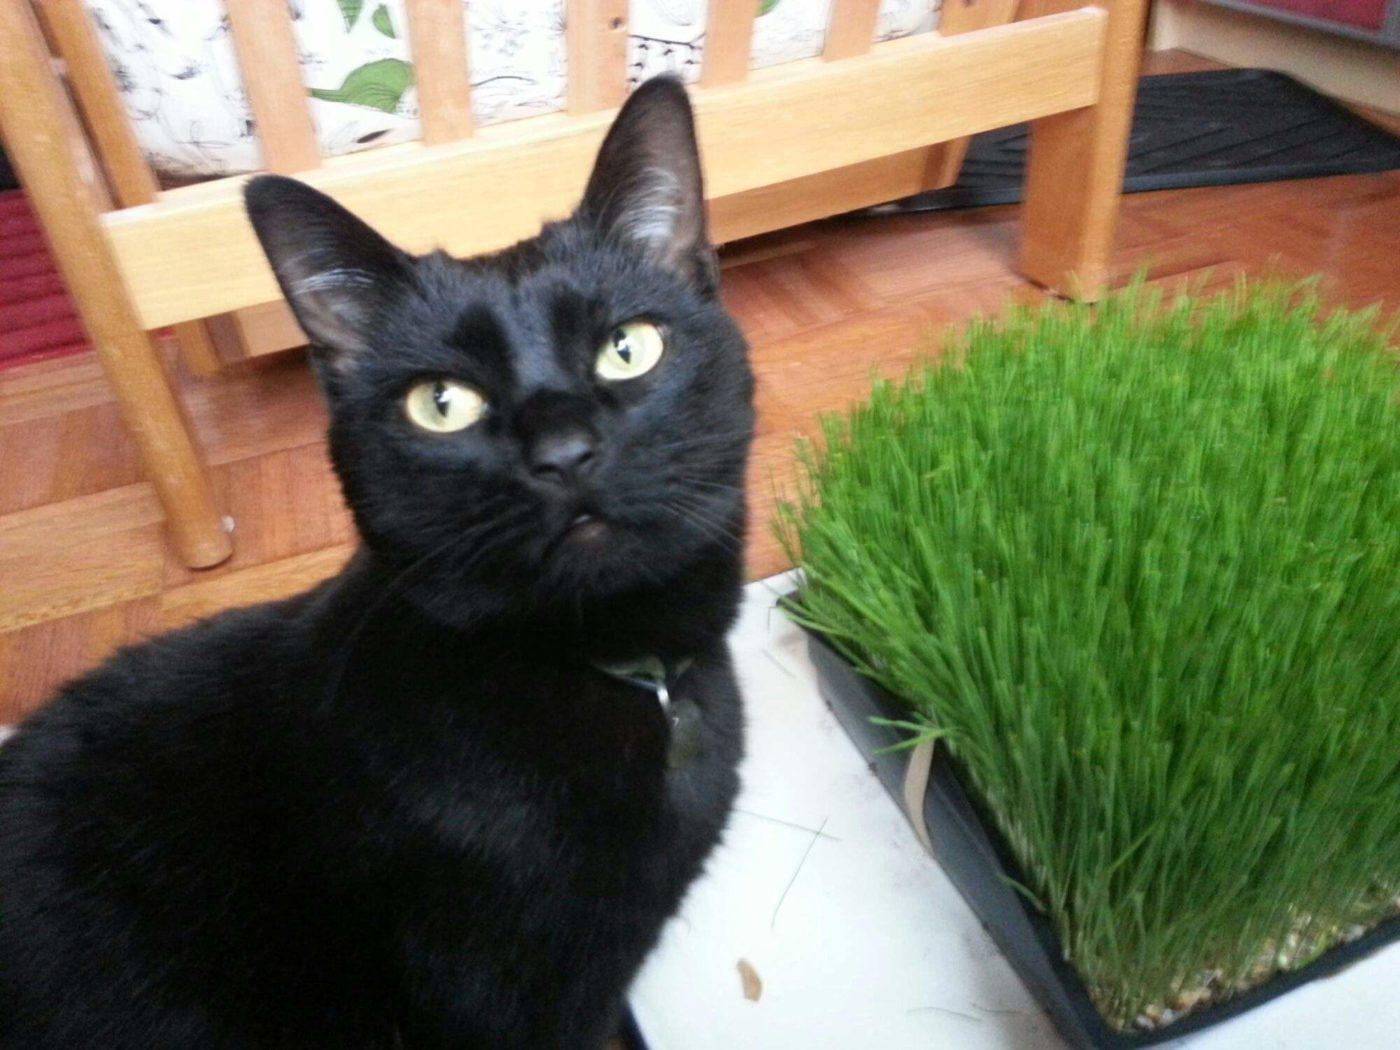 Growing wheat grass for your cat: an illustrated tutorial